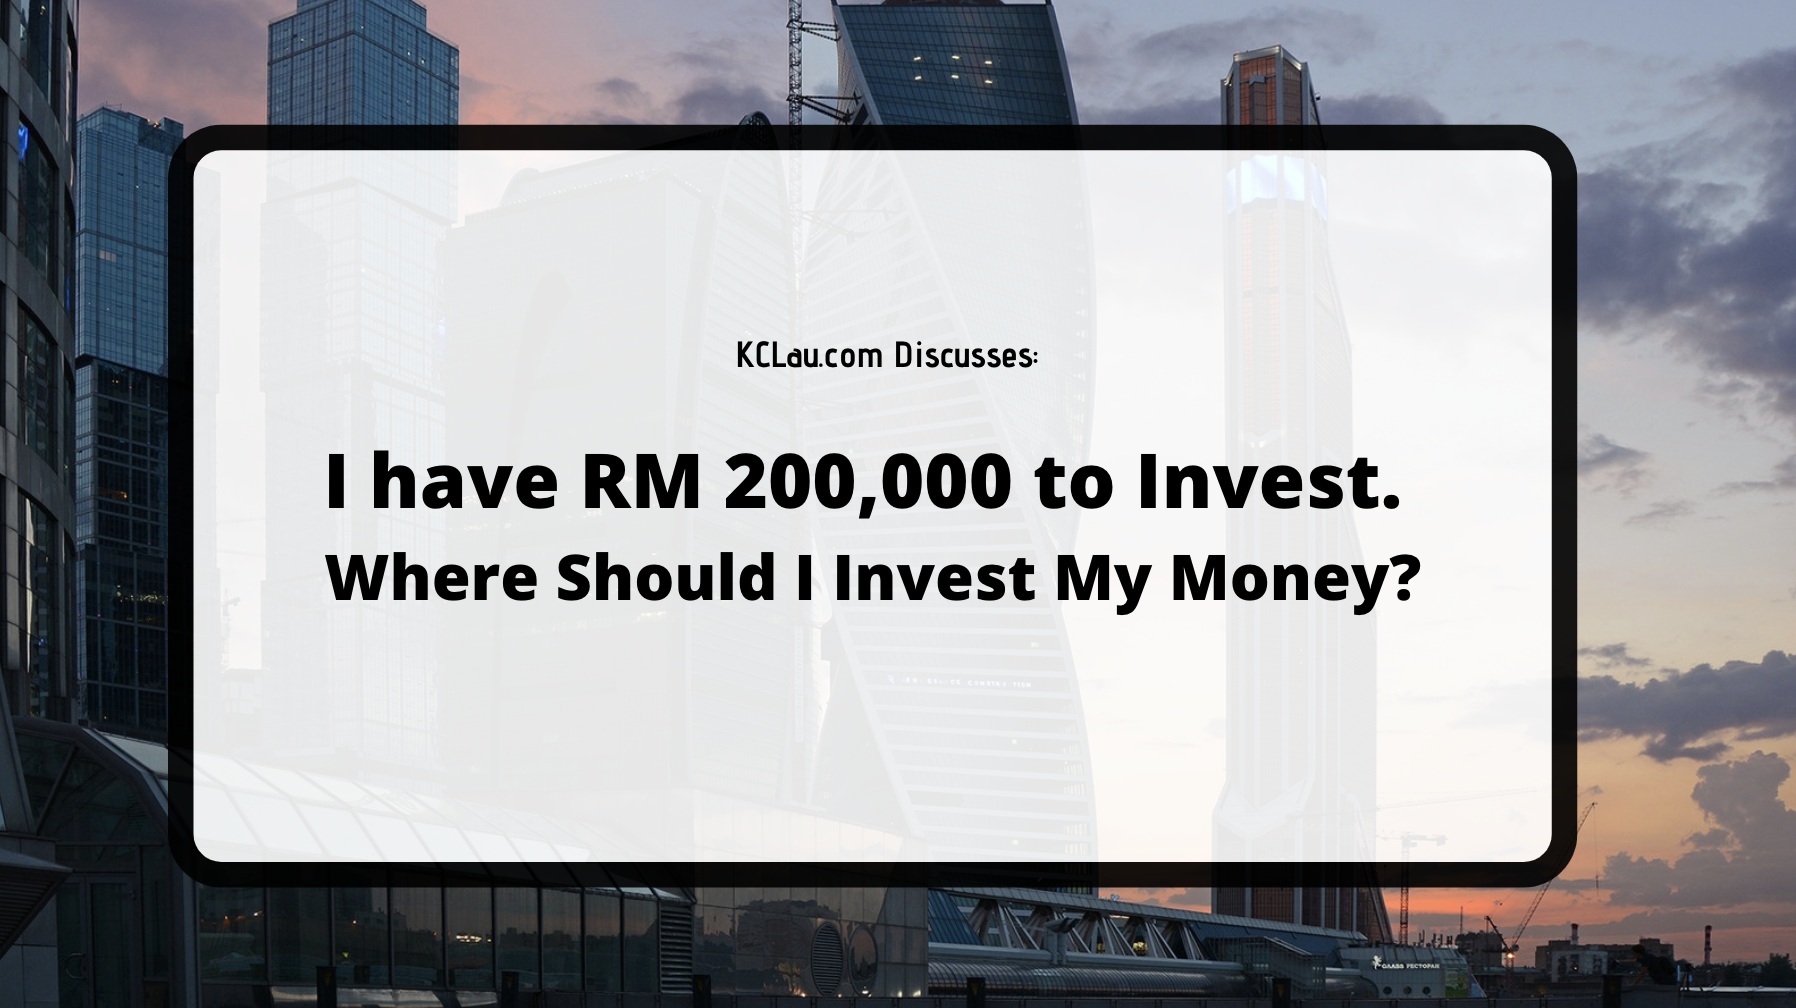 I Have RM 200,000 to Invest. Where Should I Invest My Money?